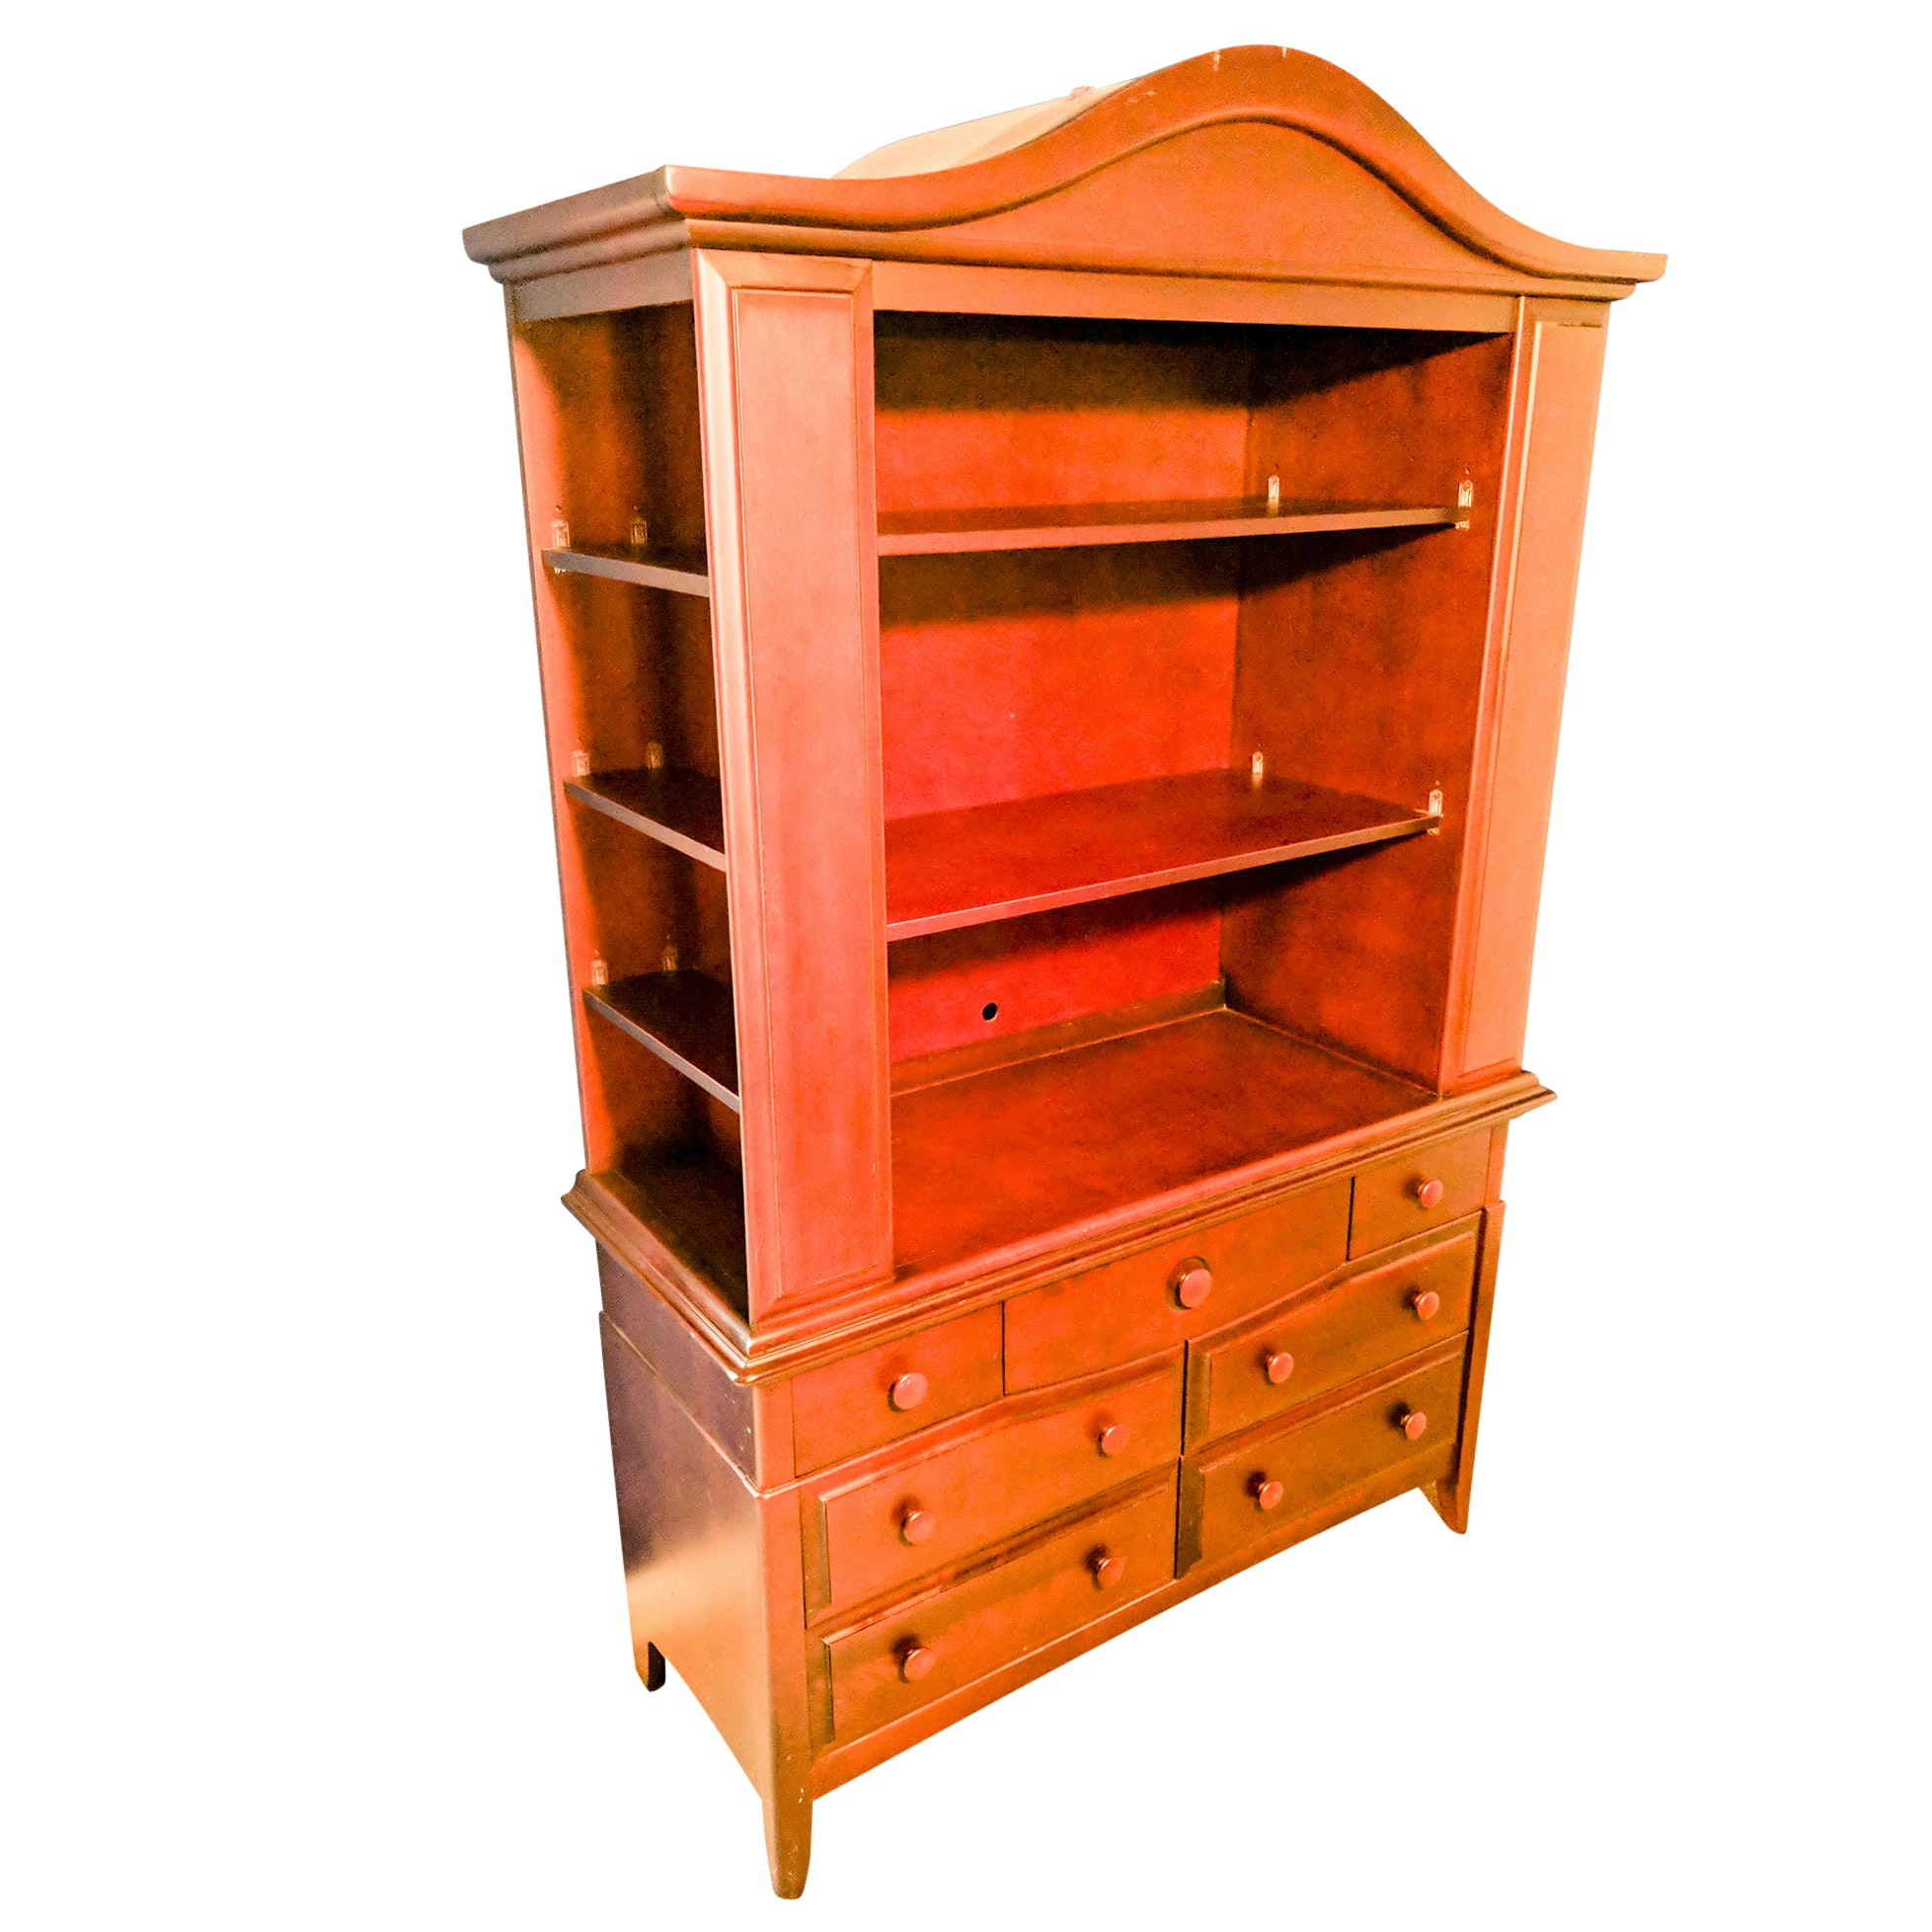 Convertible Shelving Armoire and Changing Table